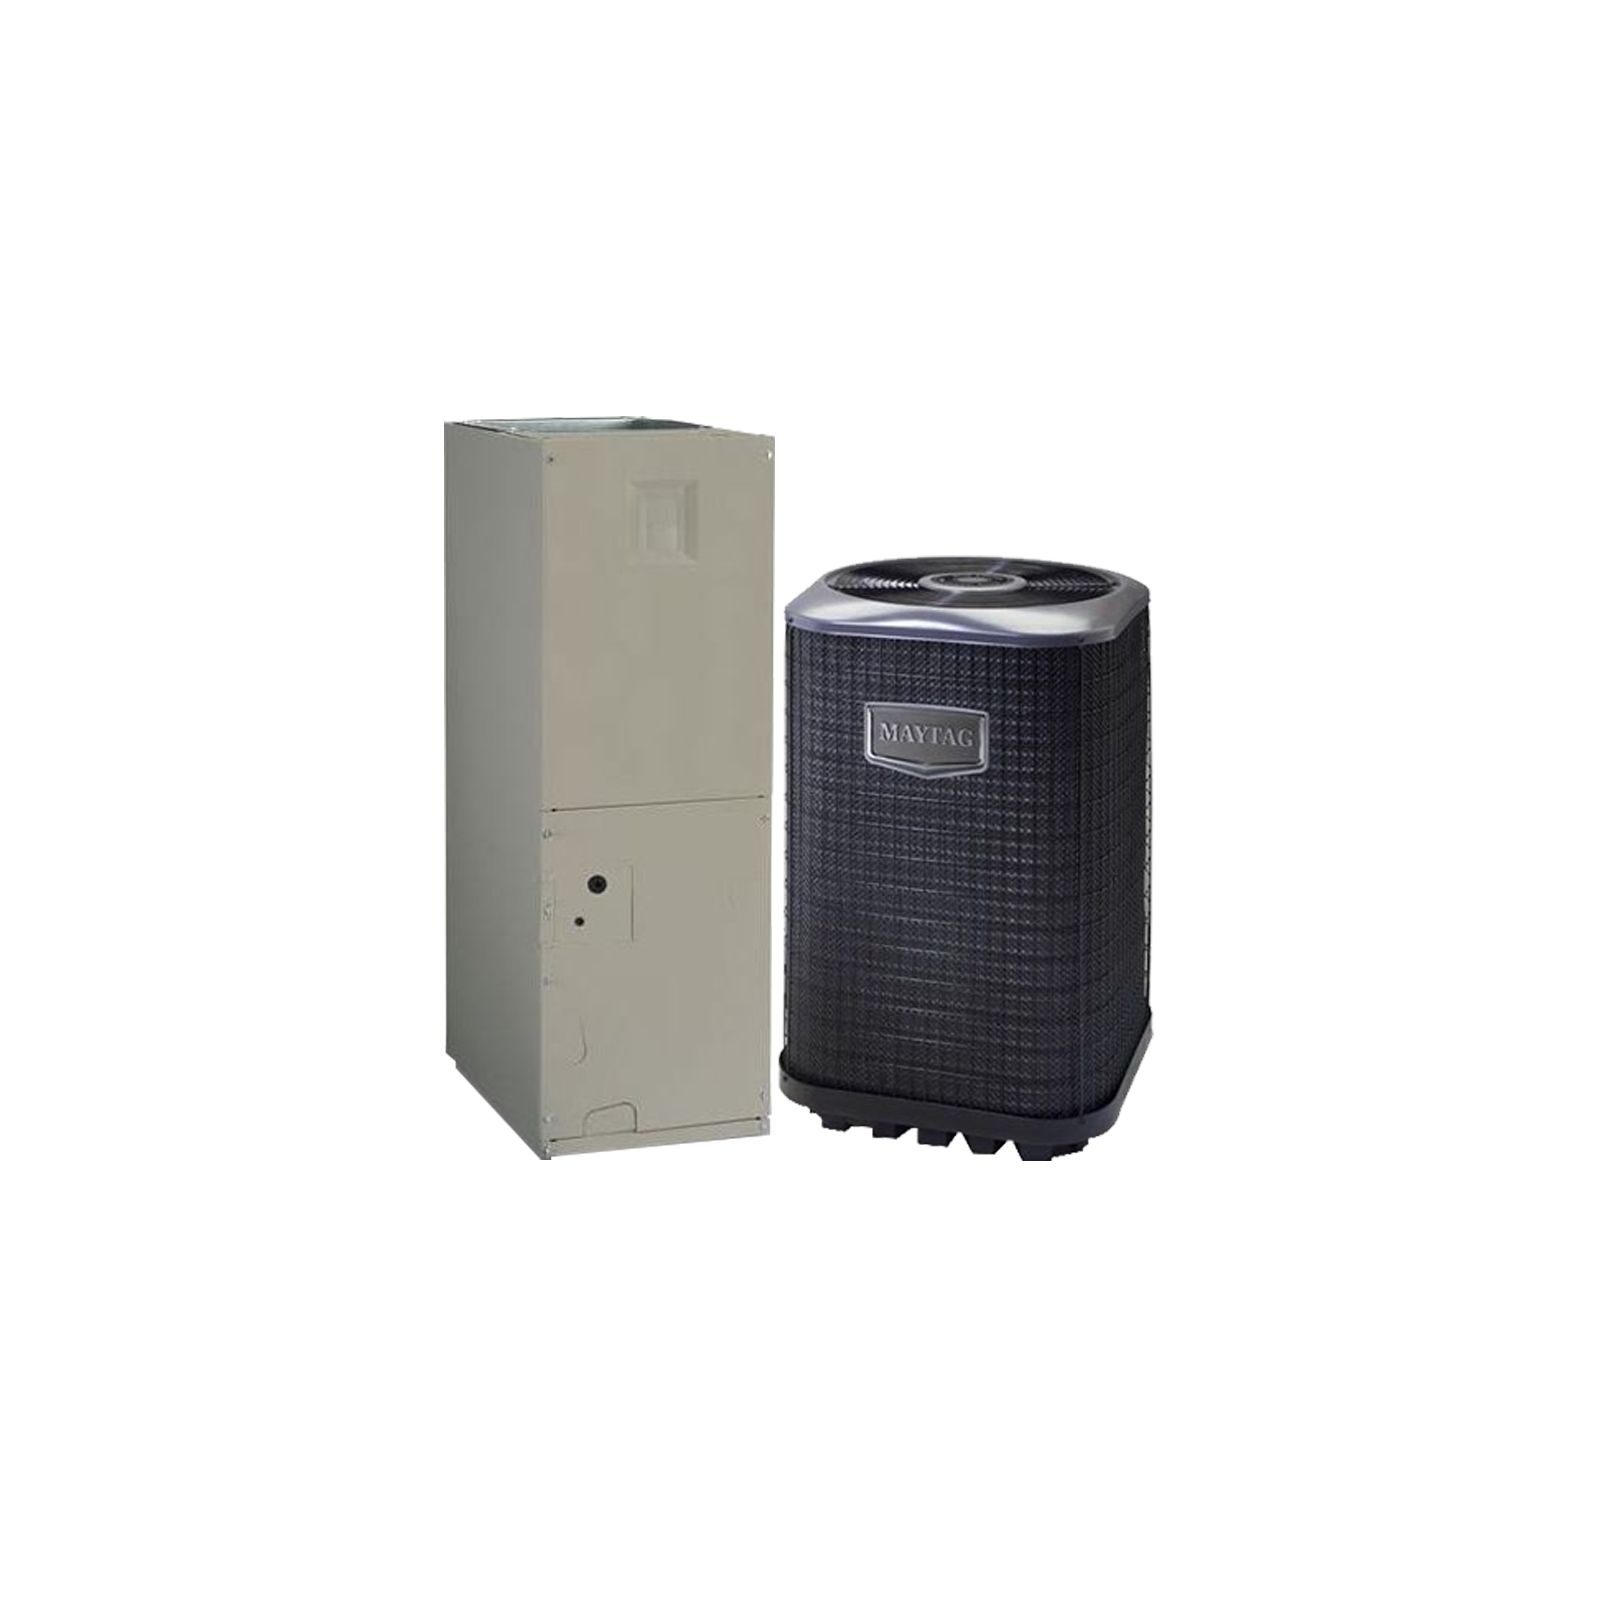 Maytag (AHRI 6752339) MSA6BF Series 3 1/2 Ton 16 SEER, Air Conditioner System